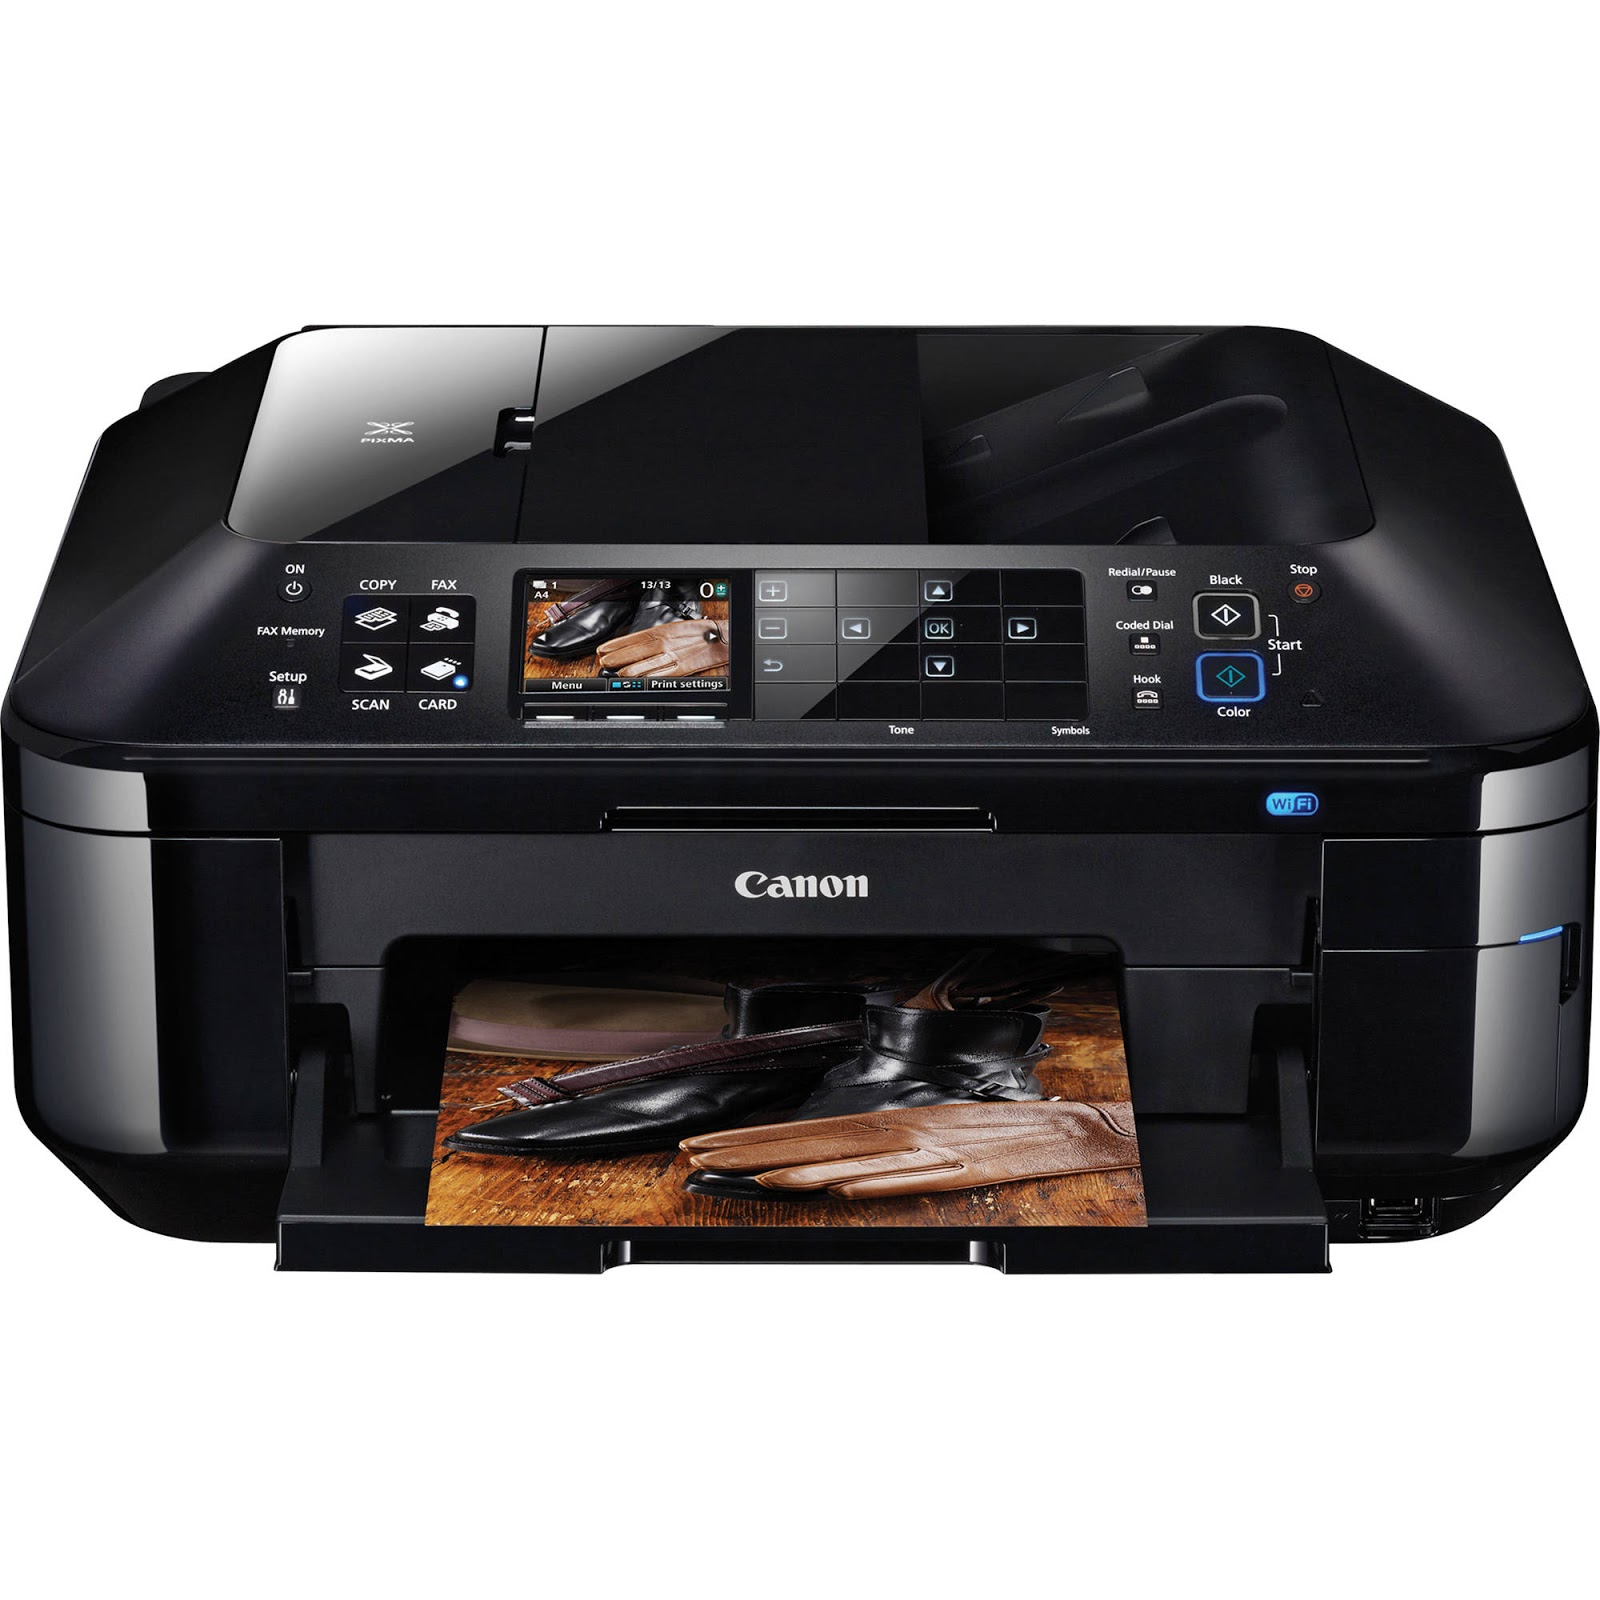 How to Fix Error Code B200 for Canon MX882 Printer